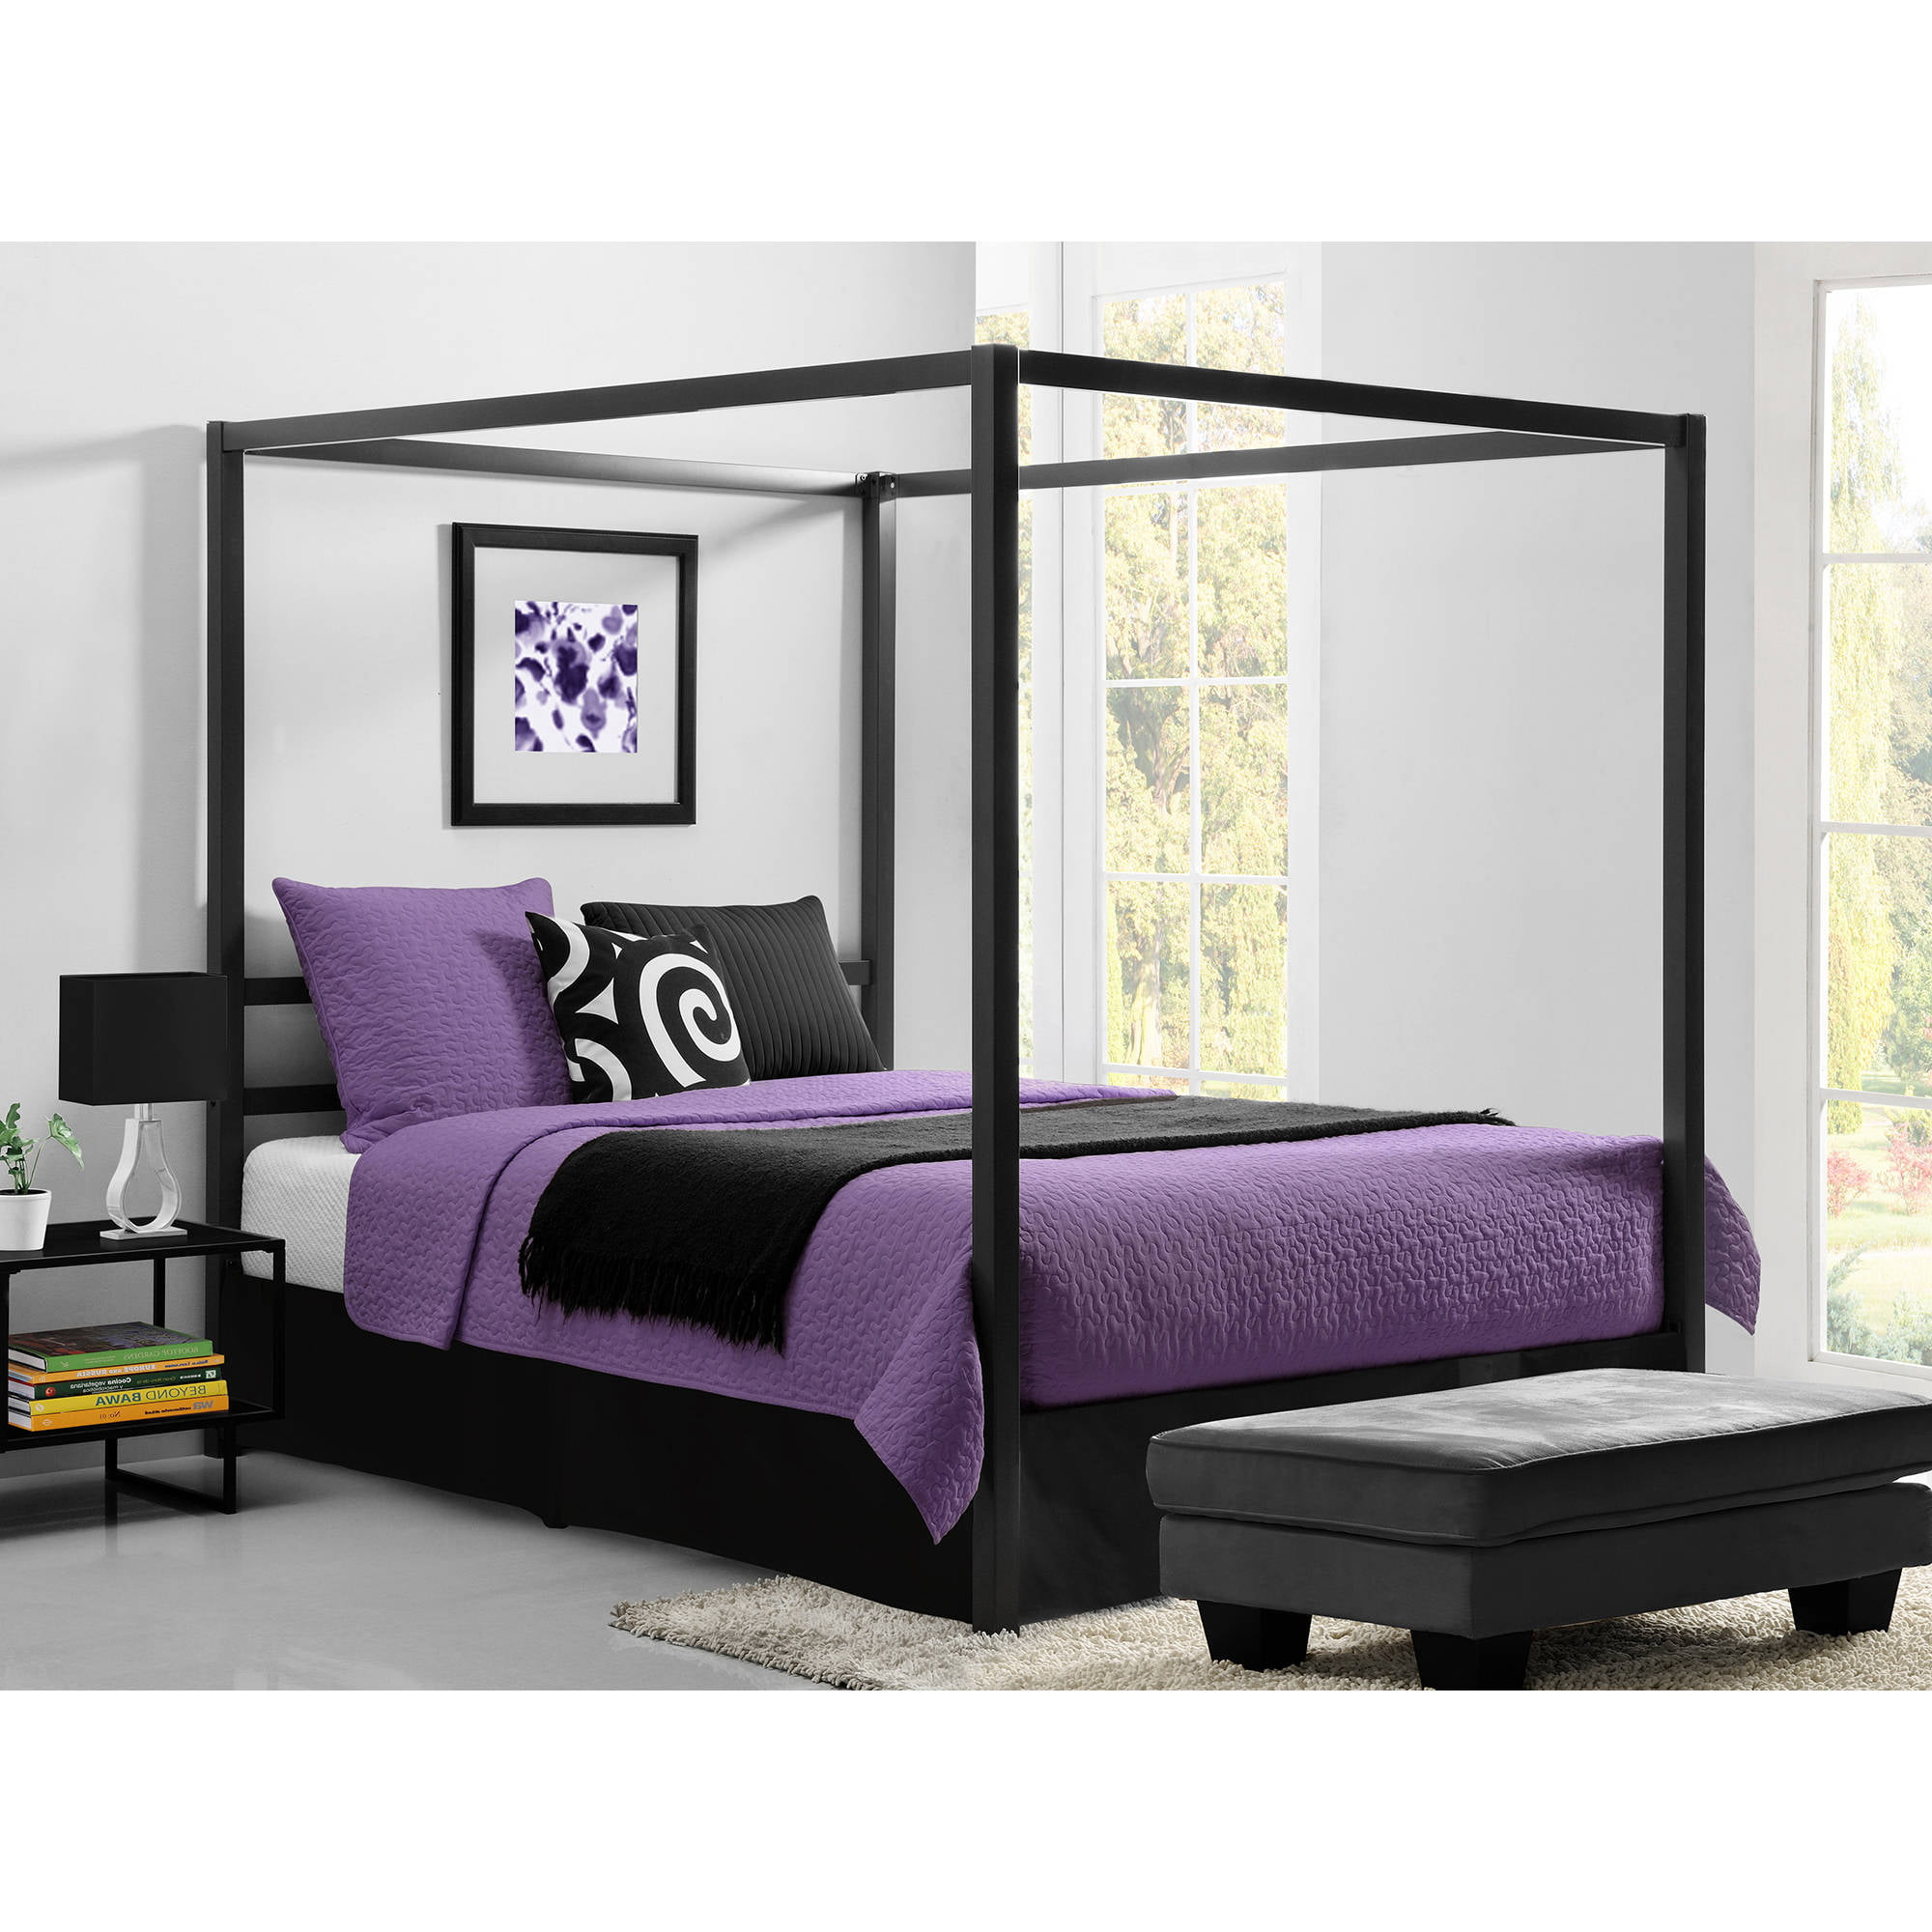 DHP Soho Modern Canopy Bed, White Metal with Black Linen, Queen (Box 2 of  2) - Walmart.com